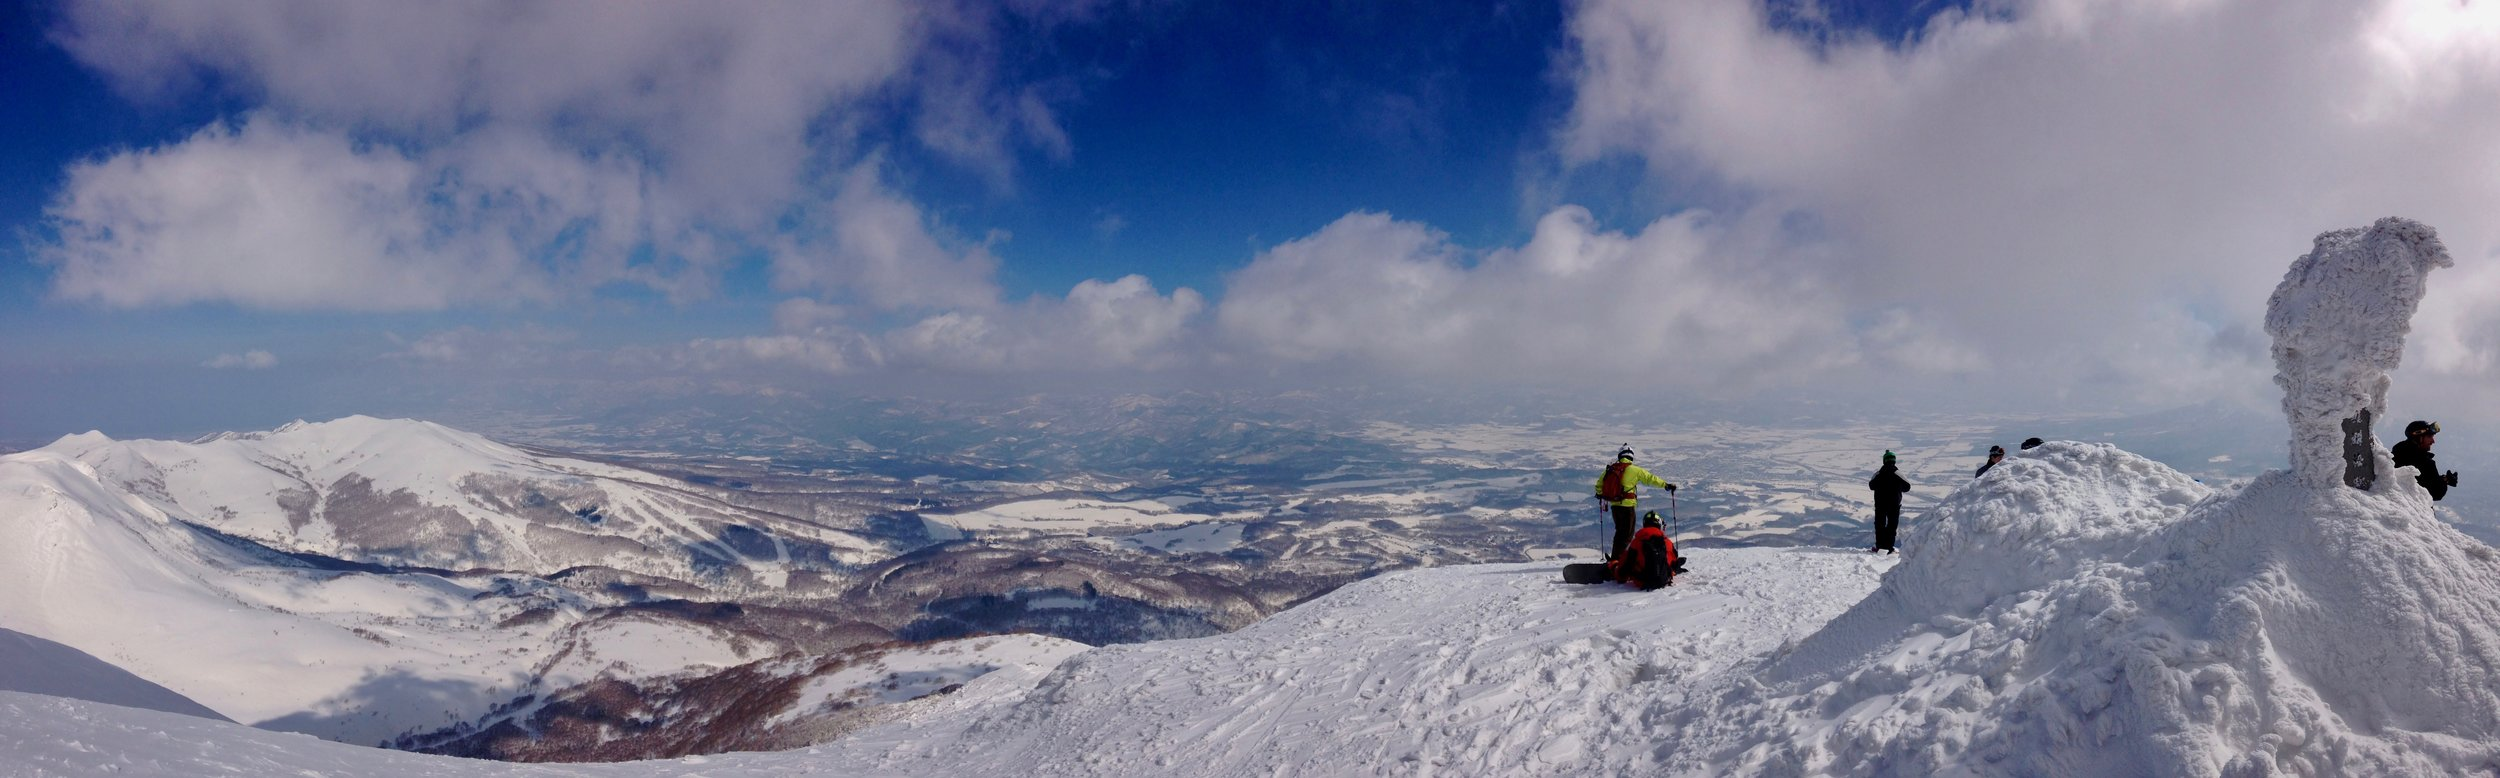 Summit of Mt Niseko Annupuri, Grand Hirafu, Hokkaidō, Japan